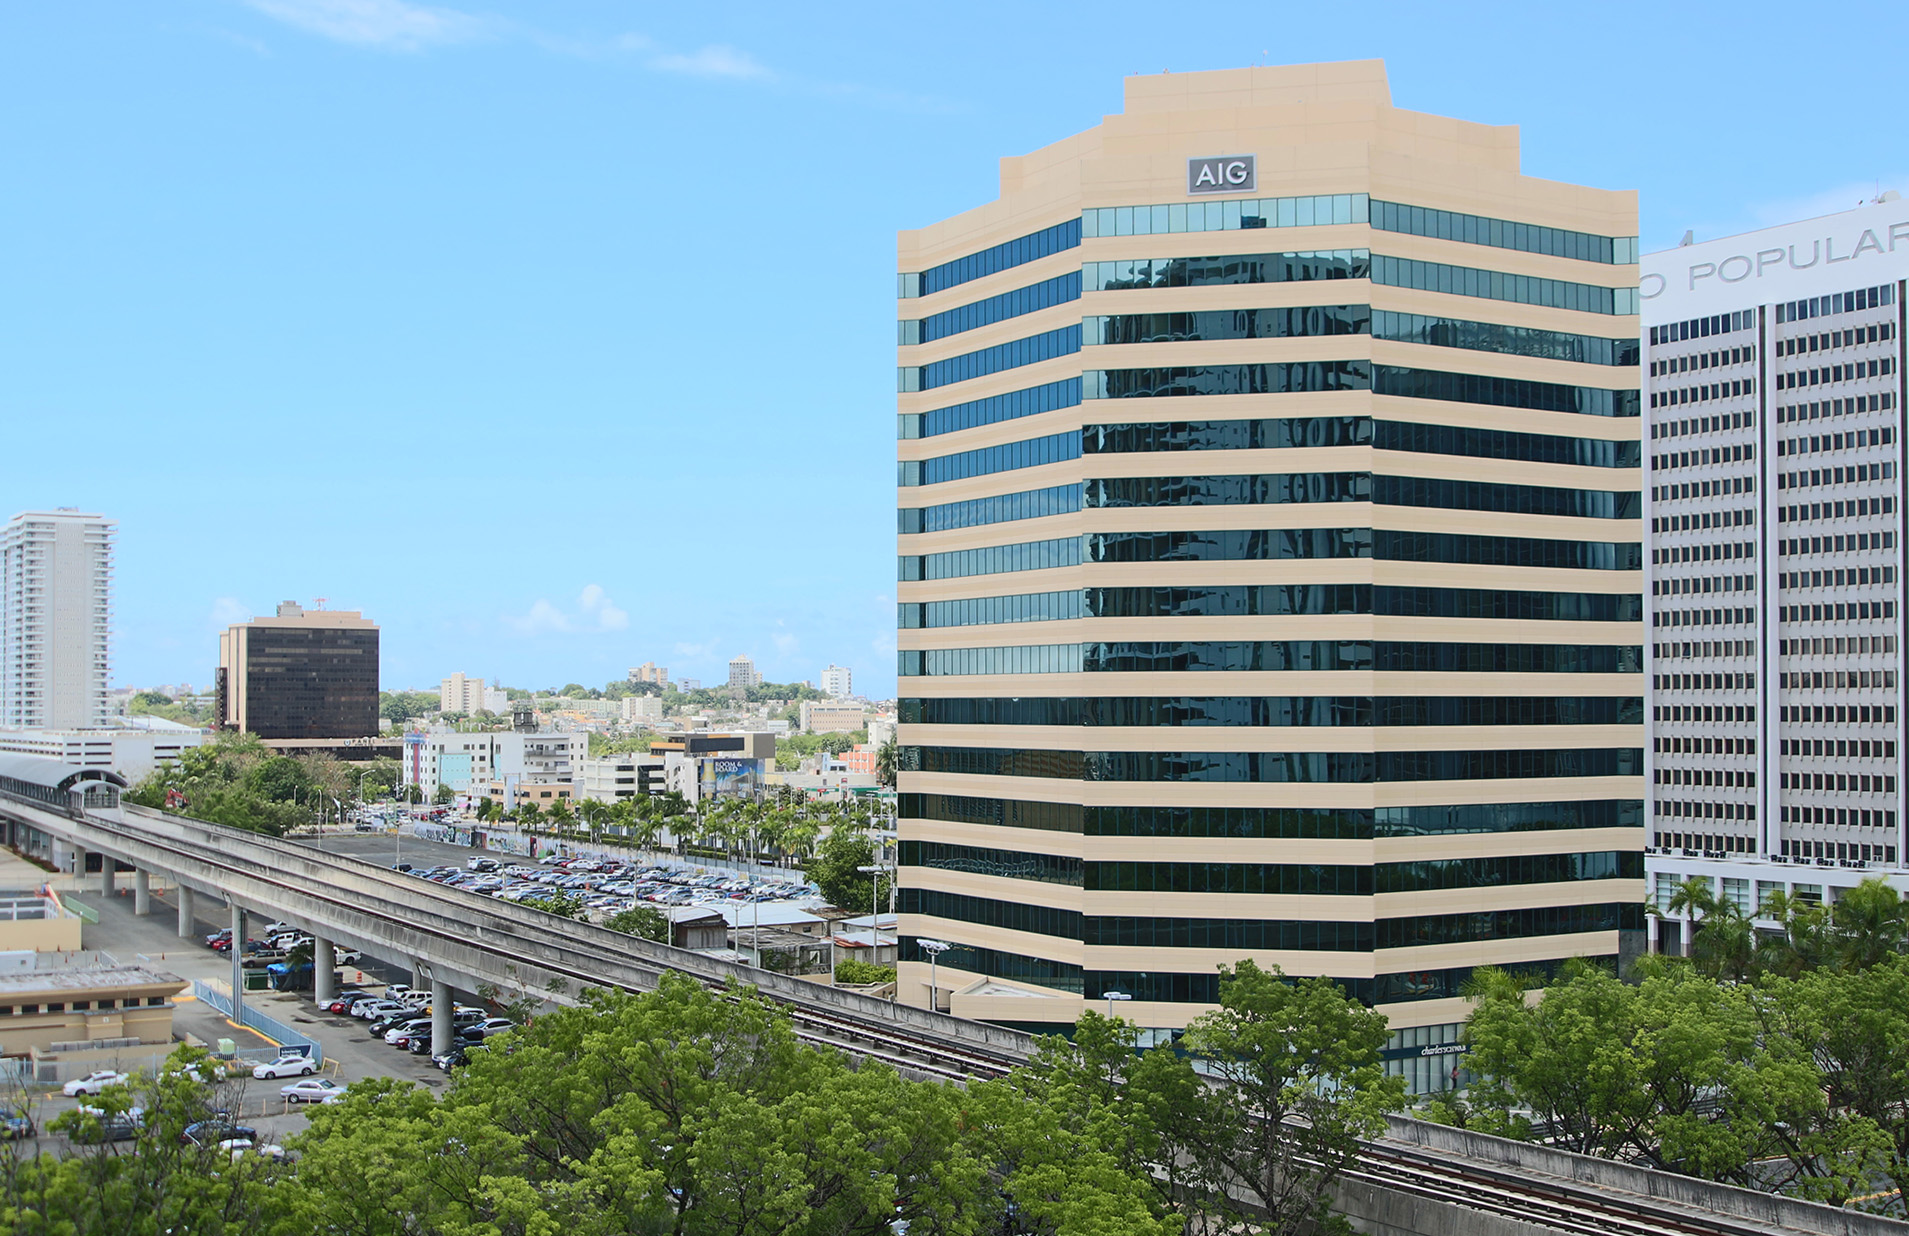 News: Puerto Rico Expands Tax Haven Deal